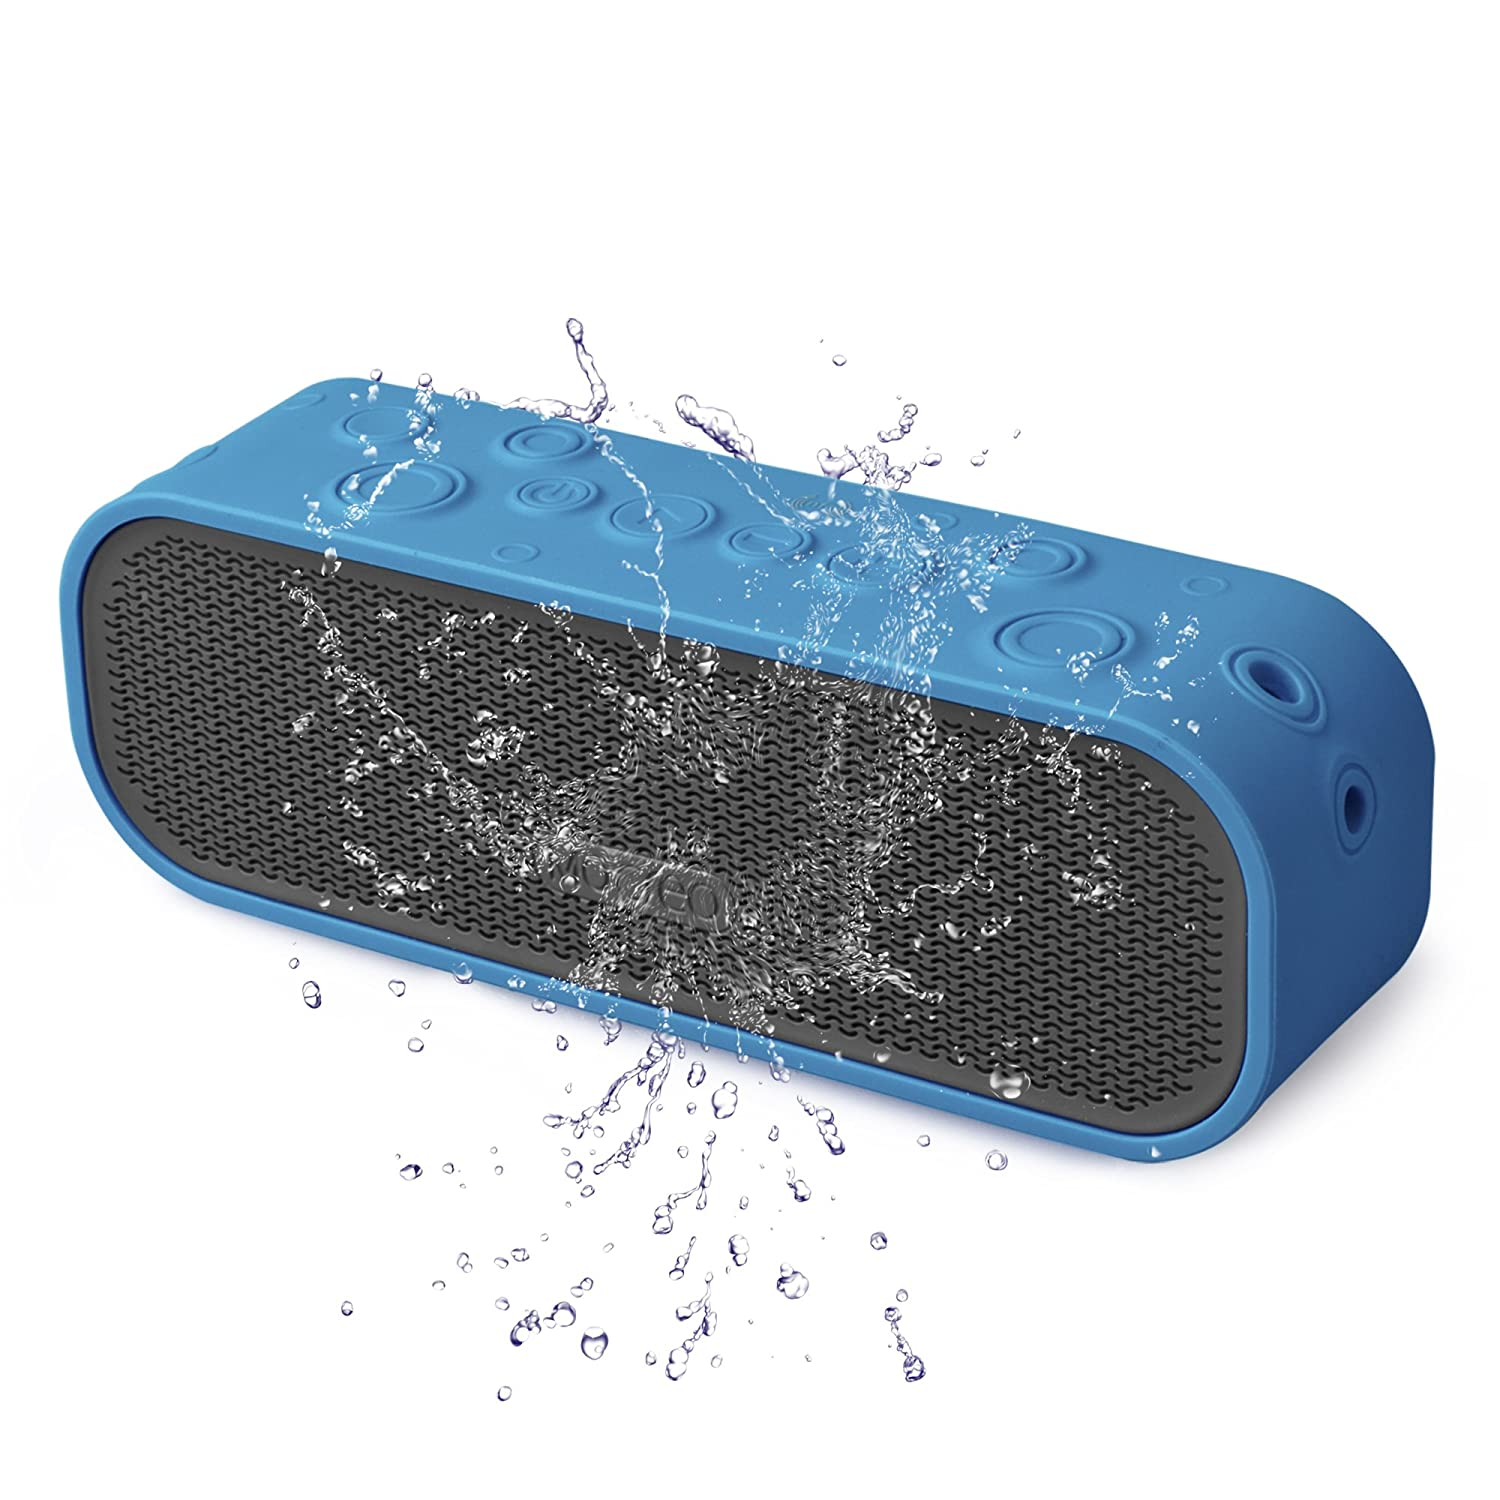 MOCREO® Water-resistant NFC Portable Bluetooth Speaker Rugged Splash Proof + Hands-free Speakerphone w/ Built-in Mic + Dual Stereo Speakers + TF Card Slot Indoor/Outdoors Waterproof Speaker IPX5 + Latest Bluetooth 4.0 W/ NFC Compatible w/ Apple iPhone 6 s112 3 in 1 portable bluetooth v3 0 stereo speaker w microphone tf aux hands free black